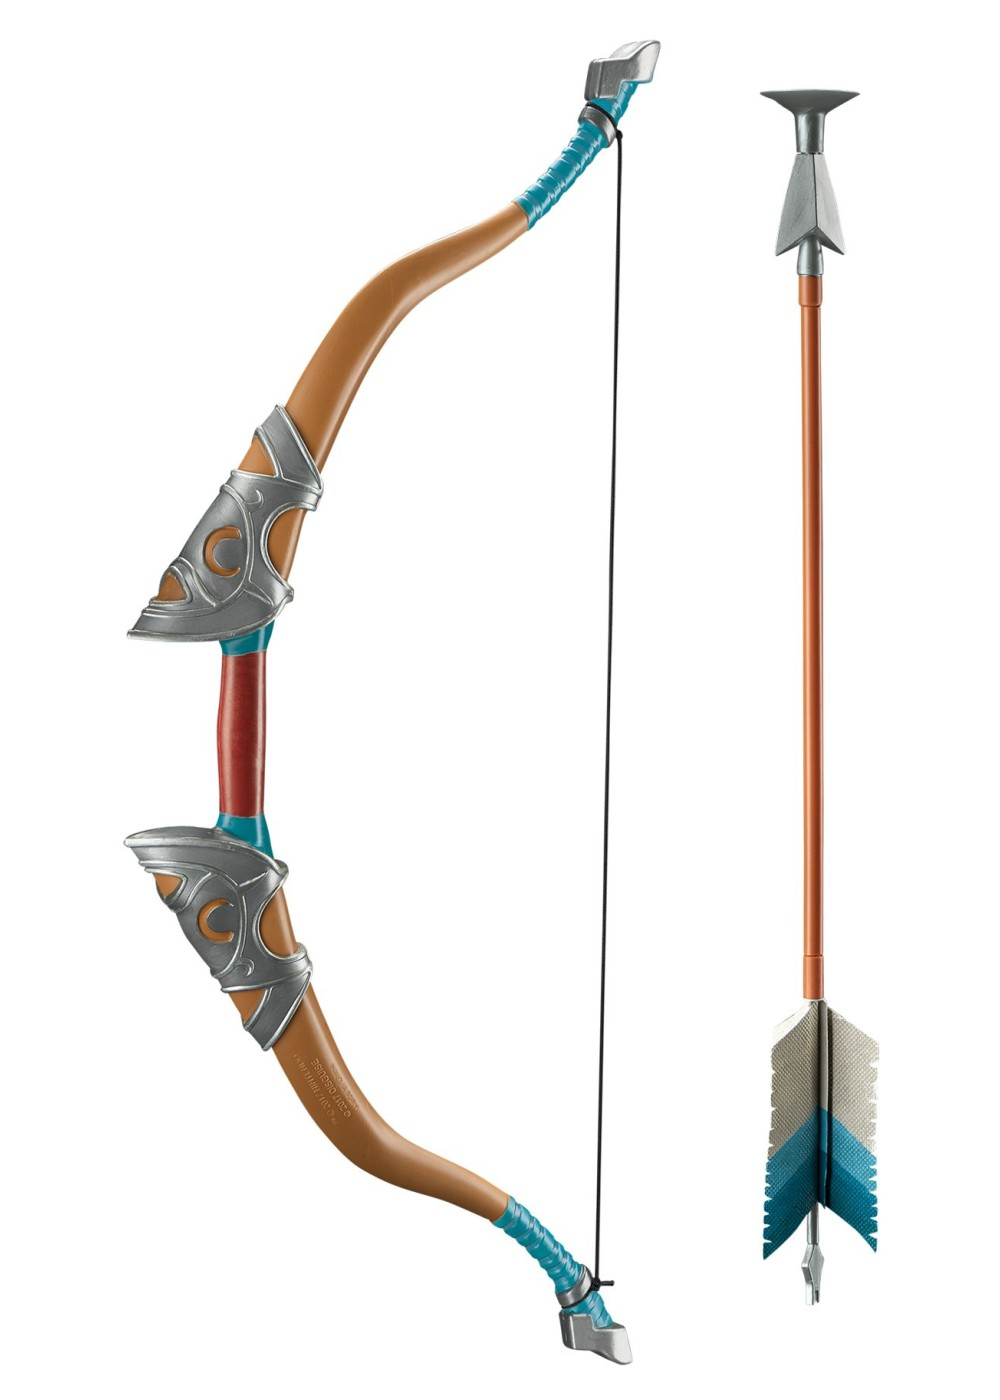 Boys Legend Of Zelda Link Bow And Arrow Video Game Costumes